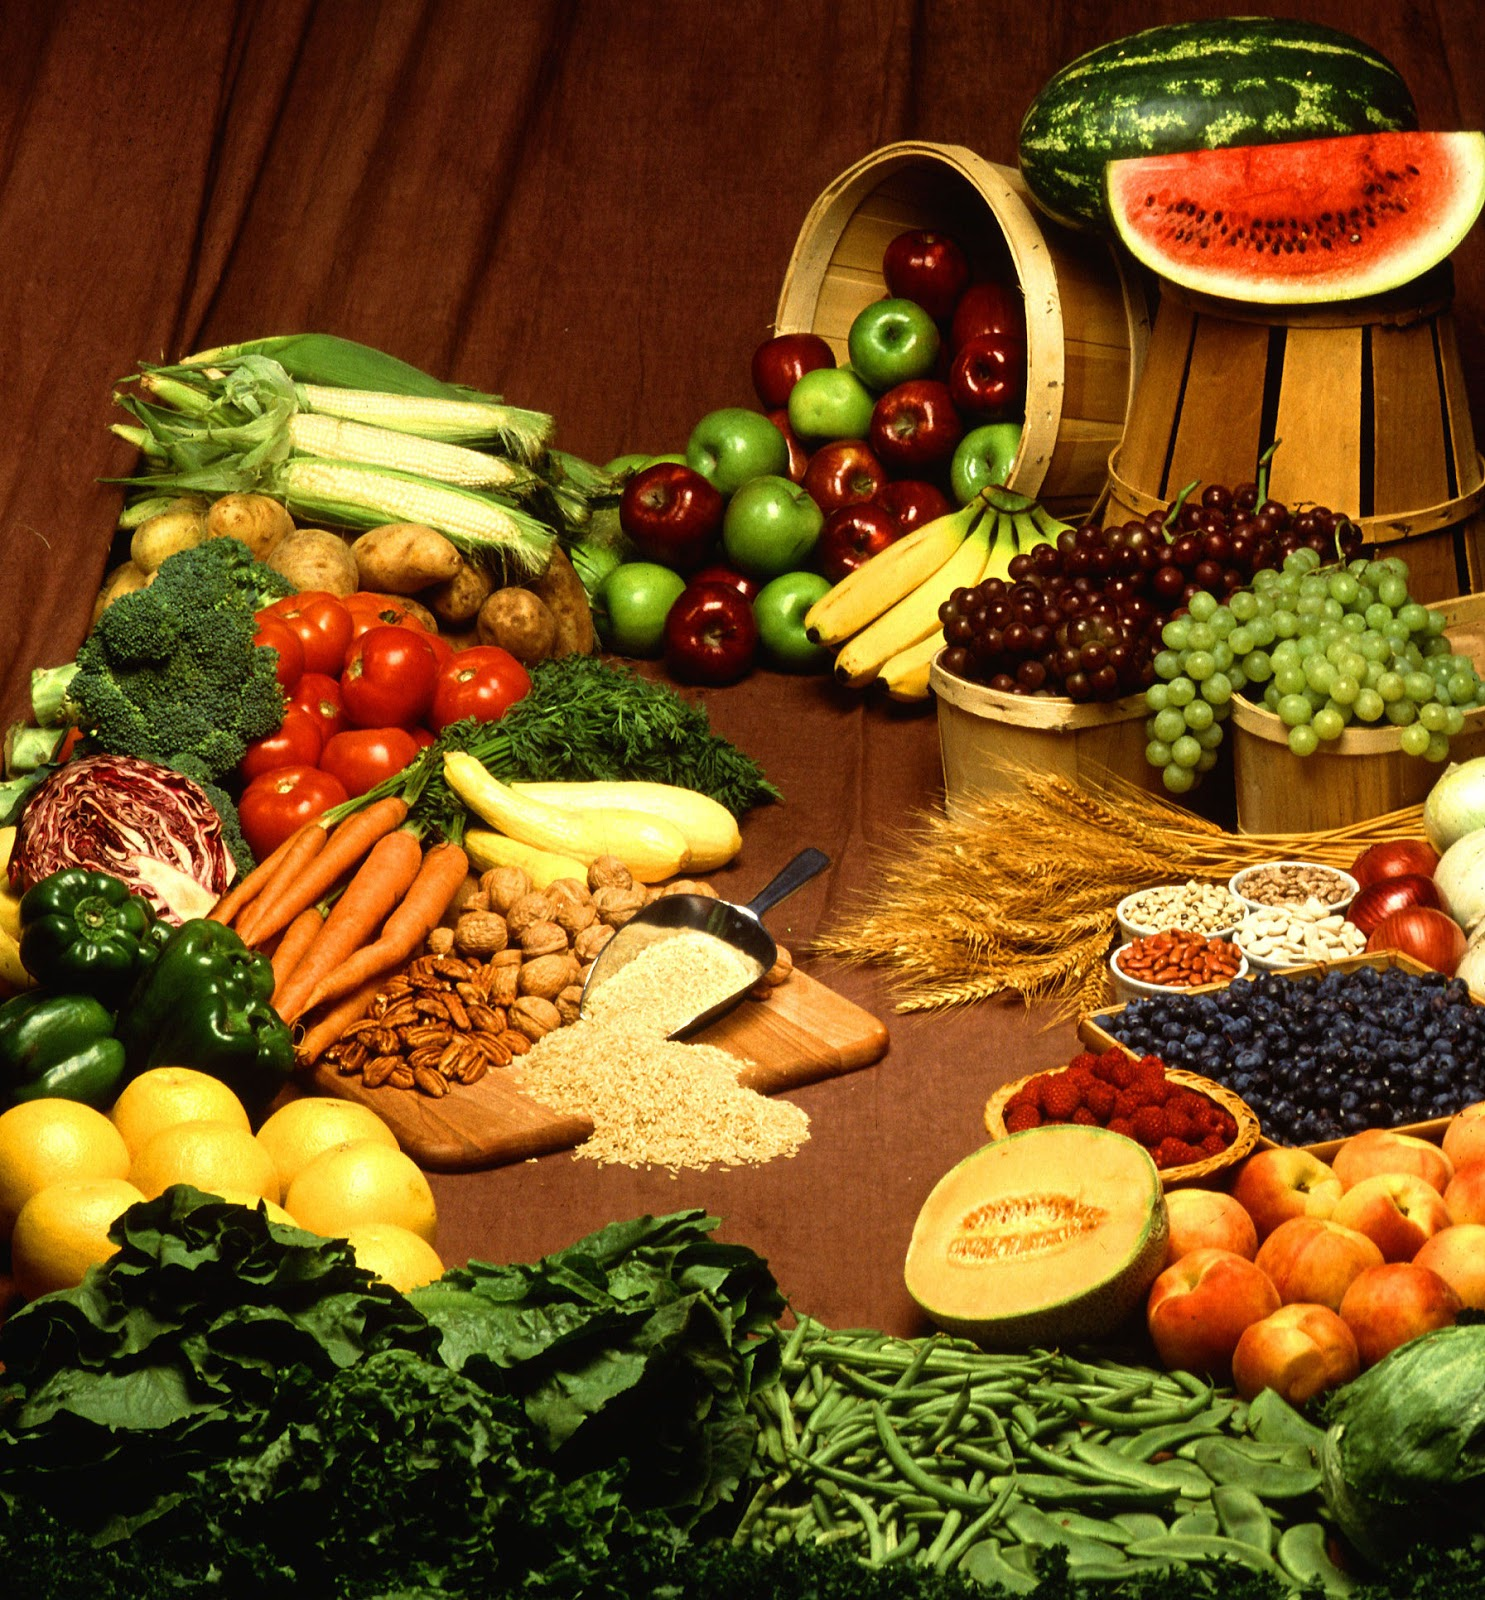 Effective Food Ingredients For Acne-Free Skin